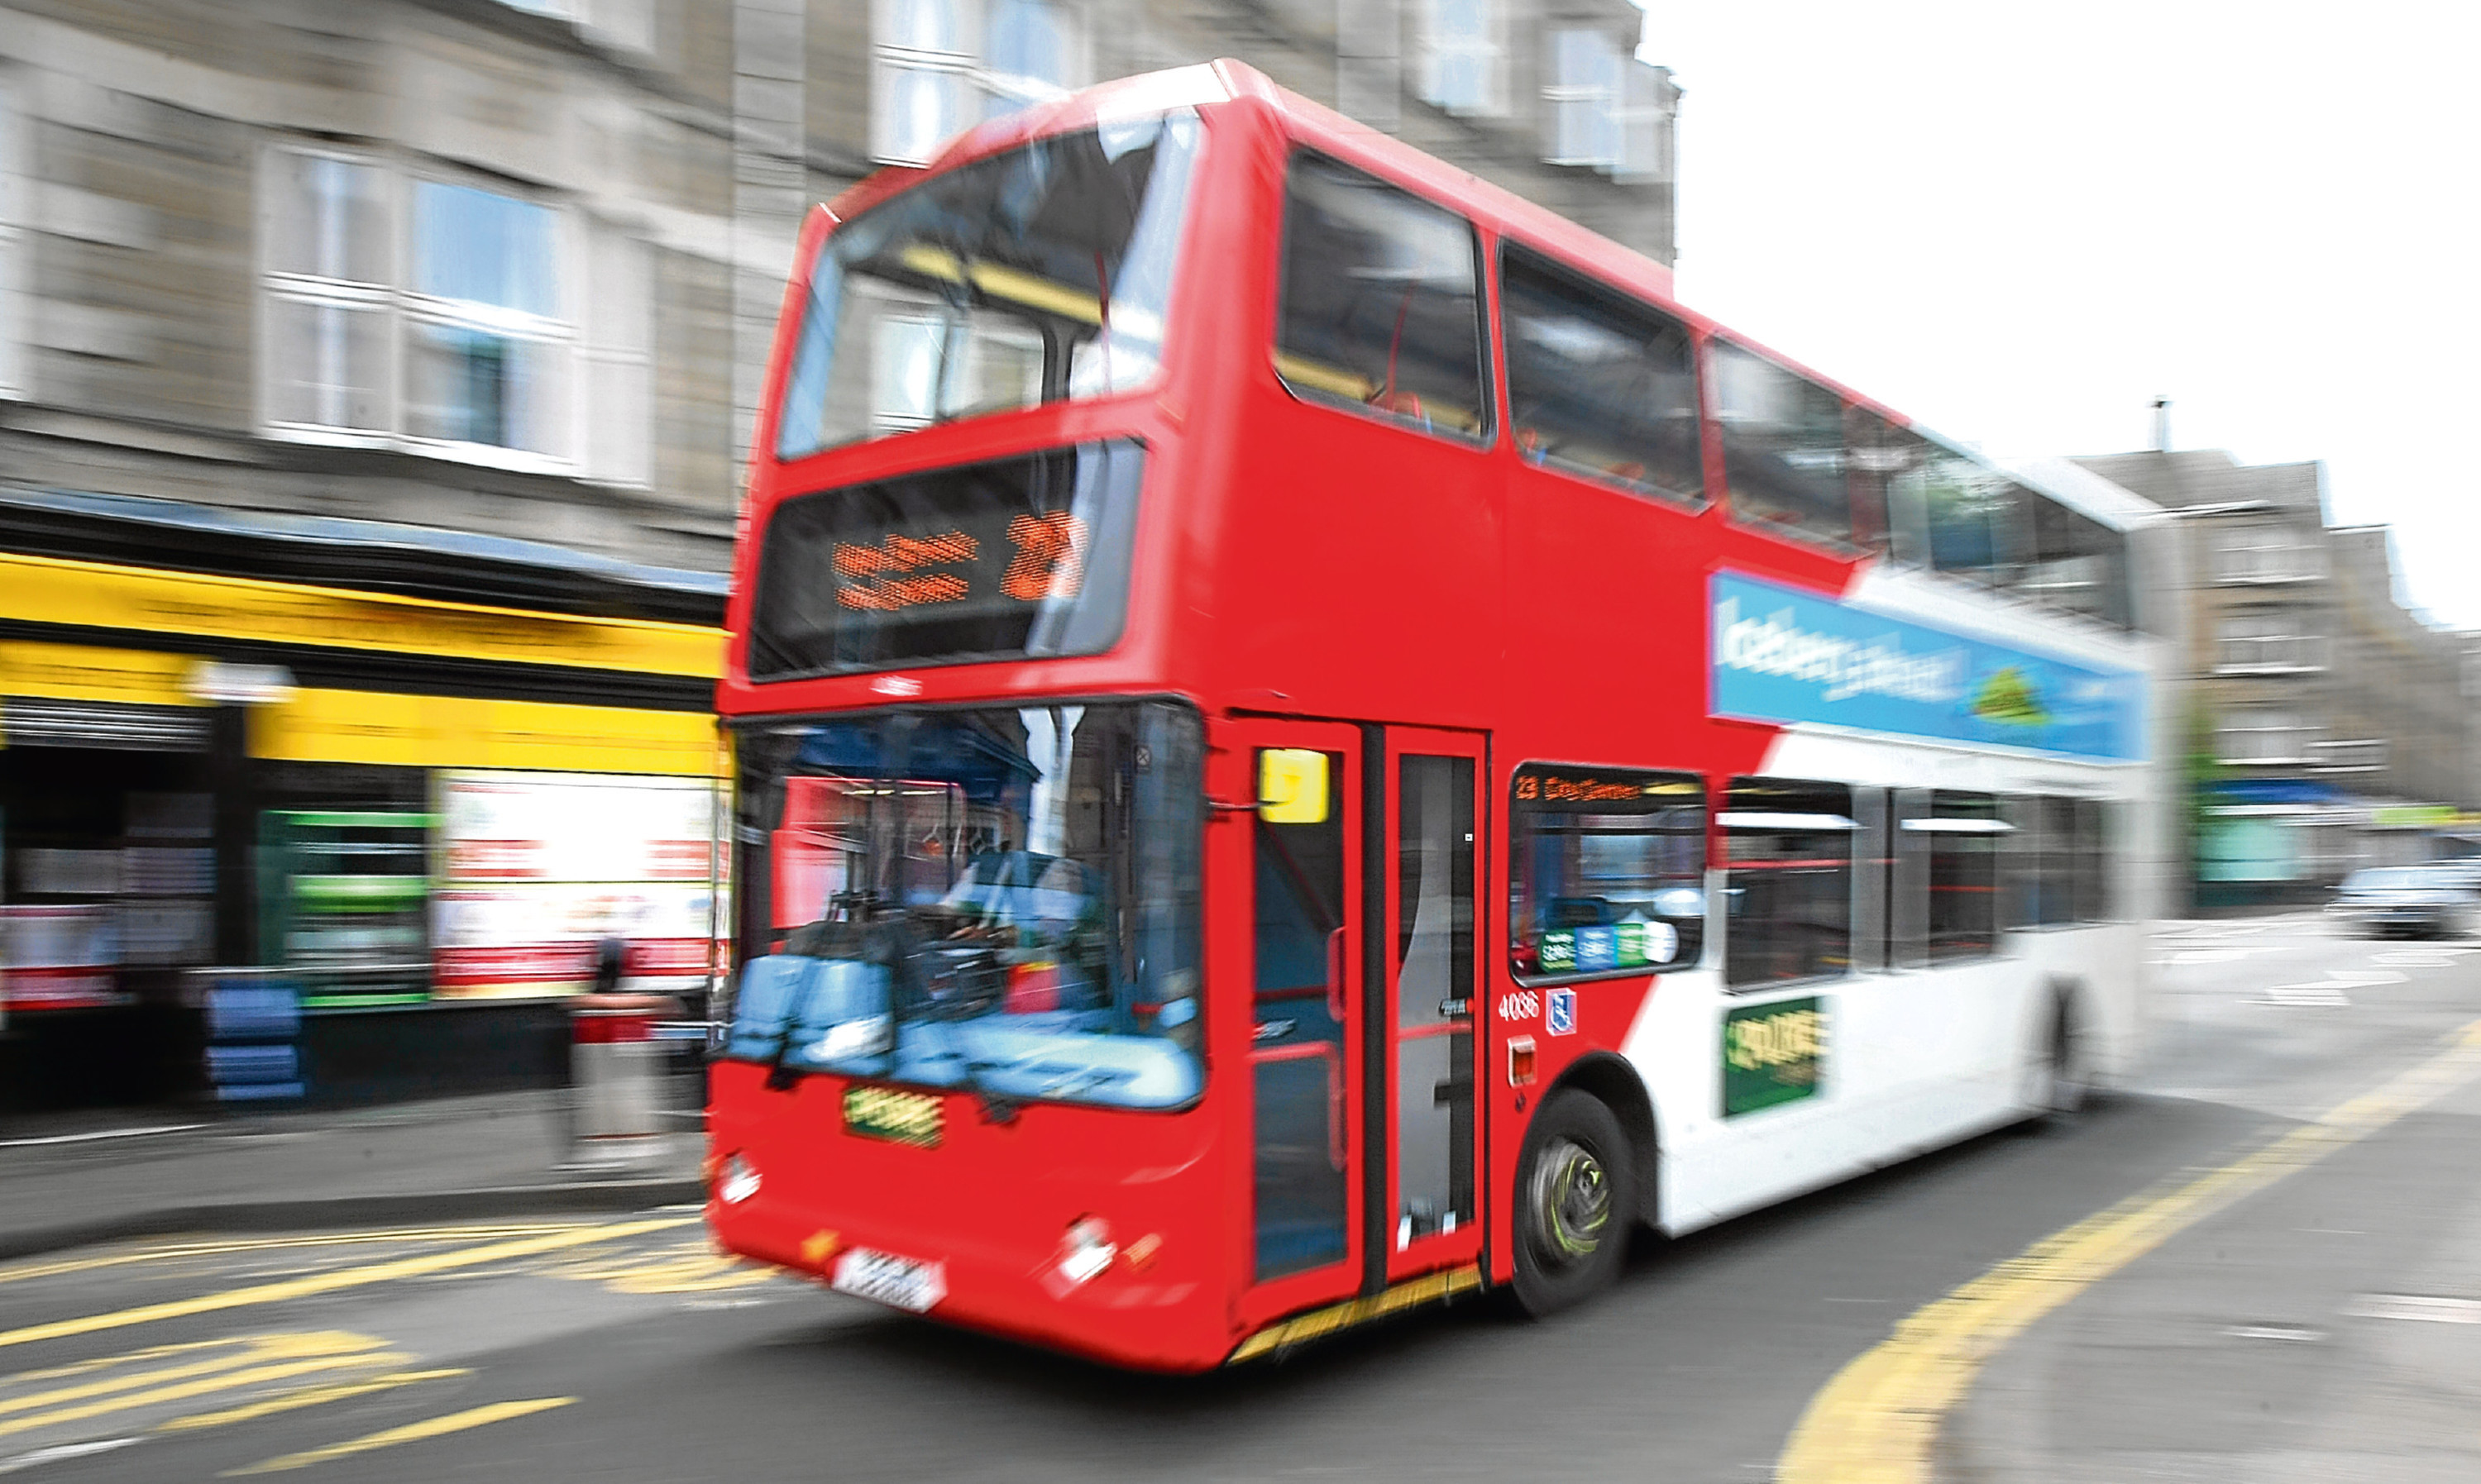 An Xplore Dundee bus navigates the city's Perth Road